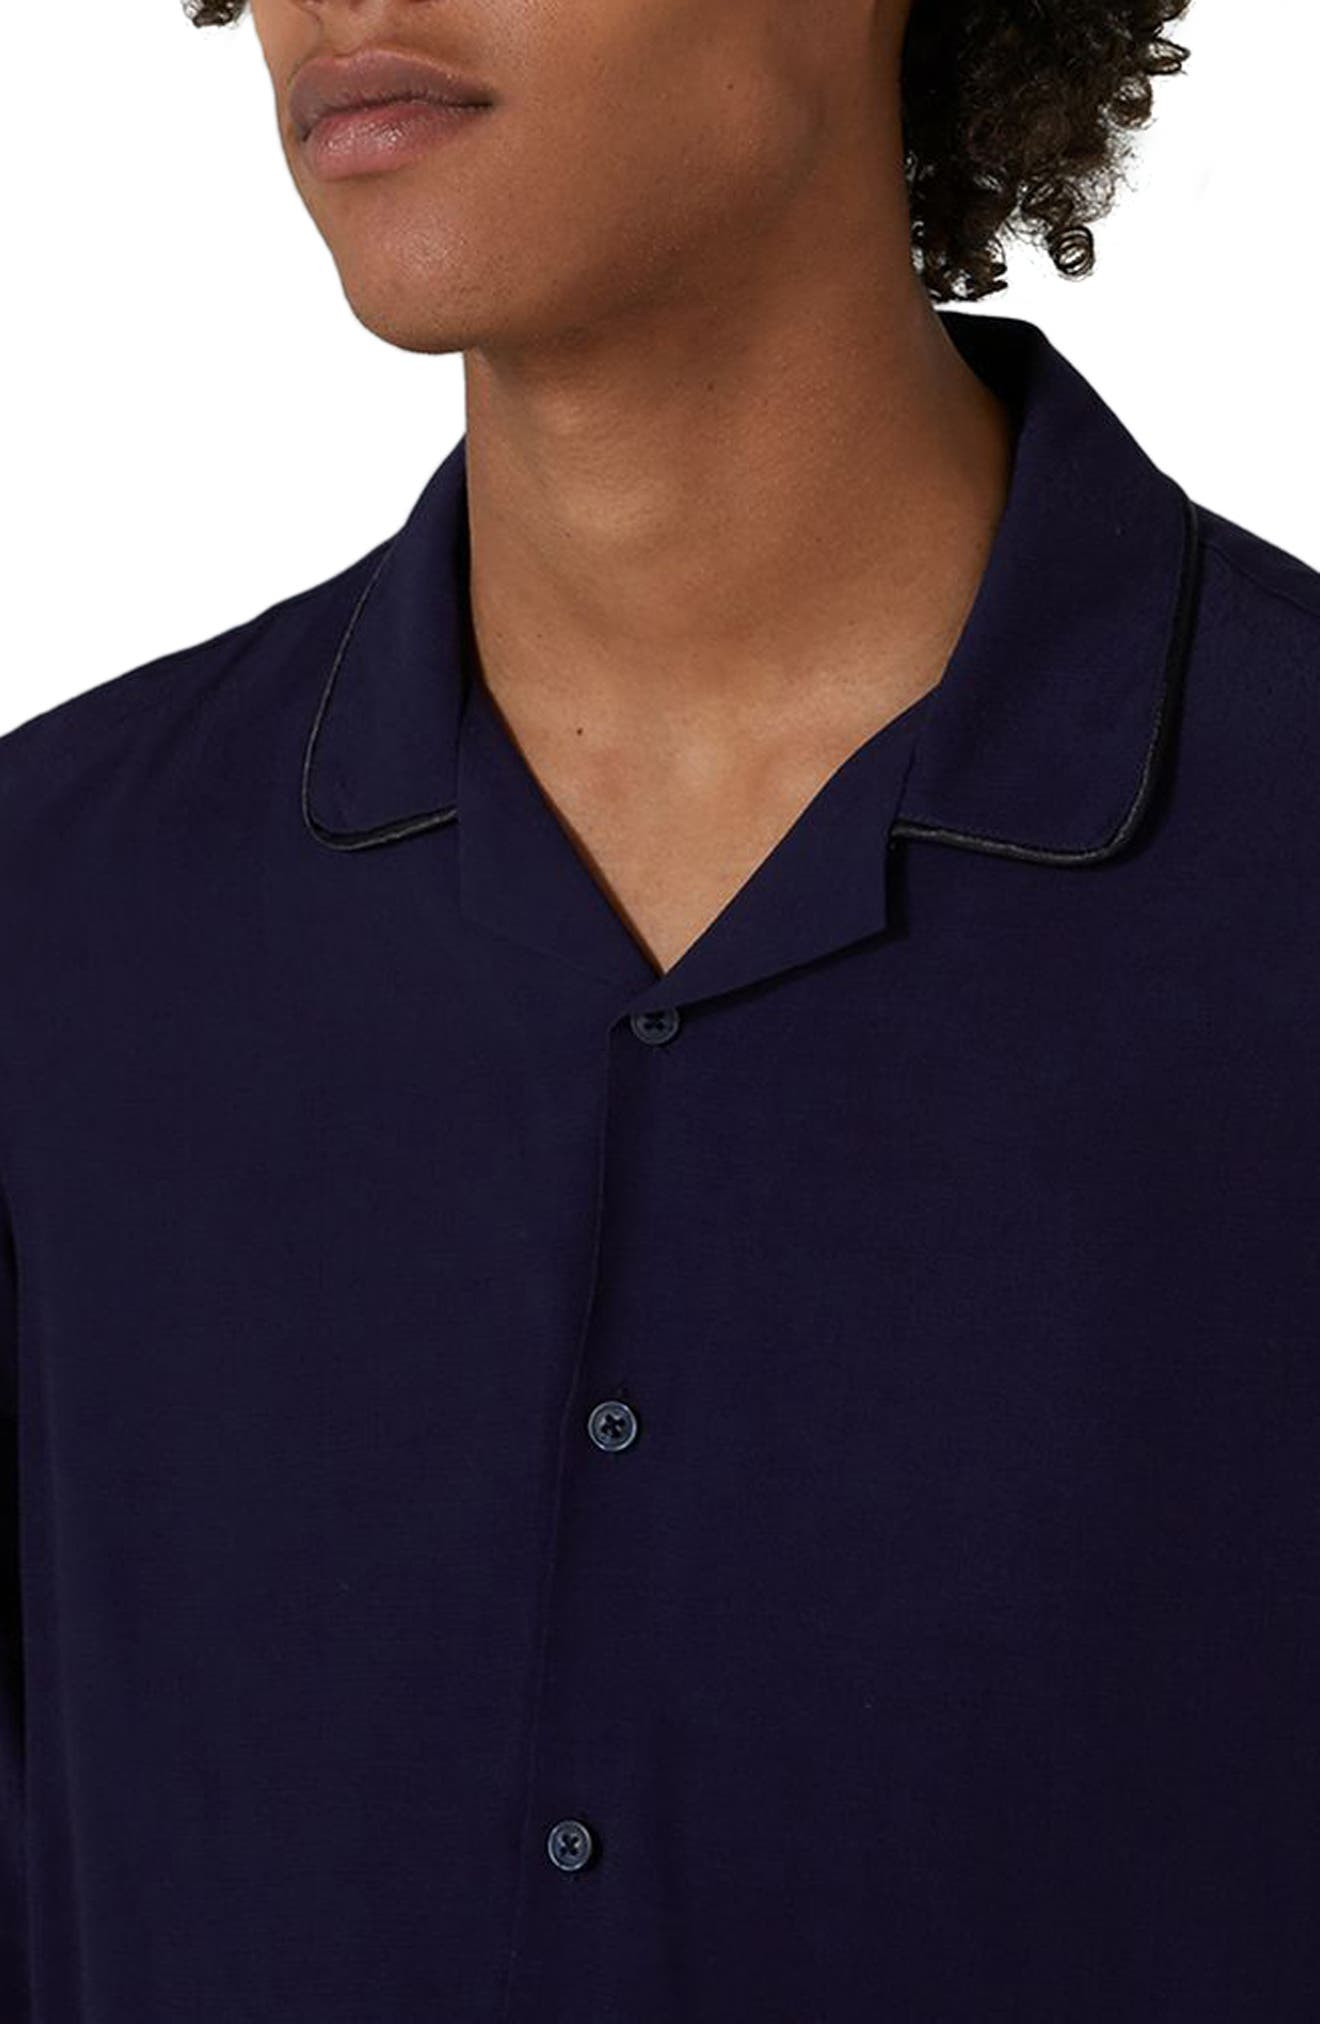 Piped Crepe Shirt,                             Alternate thumbnail 3, color,                             Navy Blue